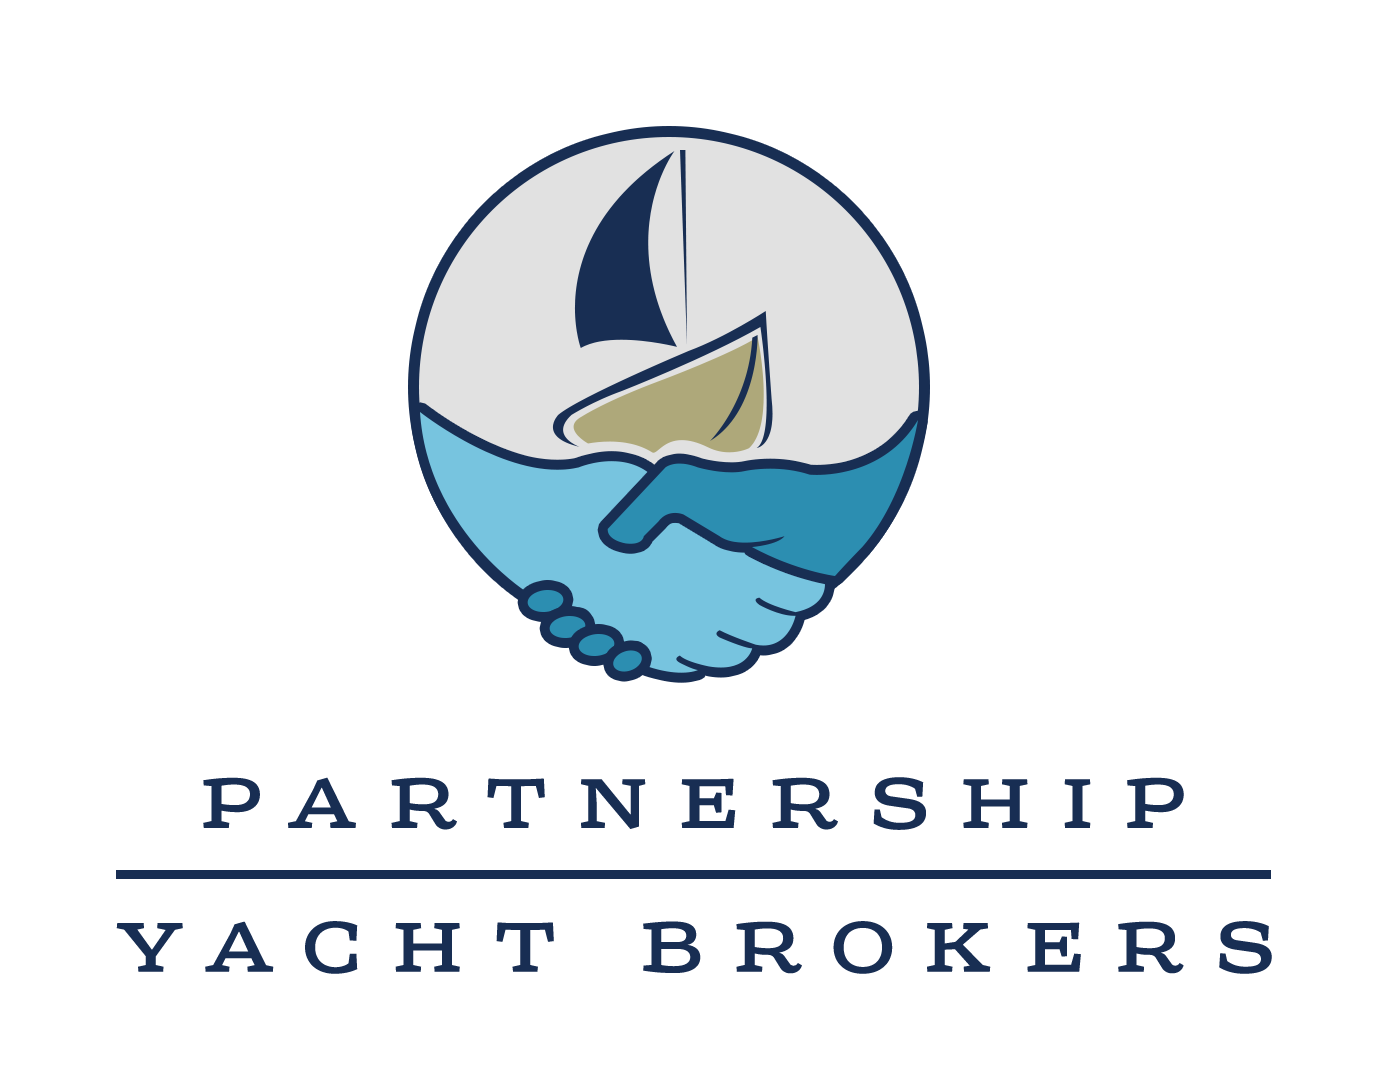 Partnership Yacht Brokers logo